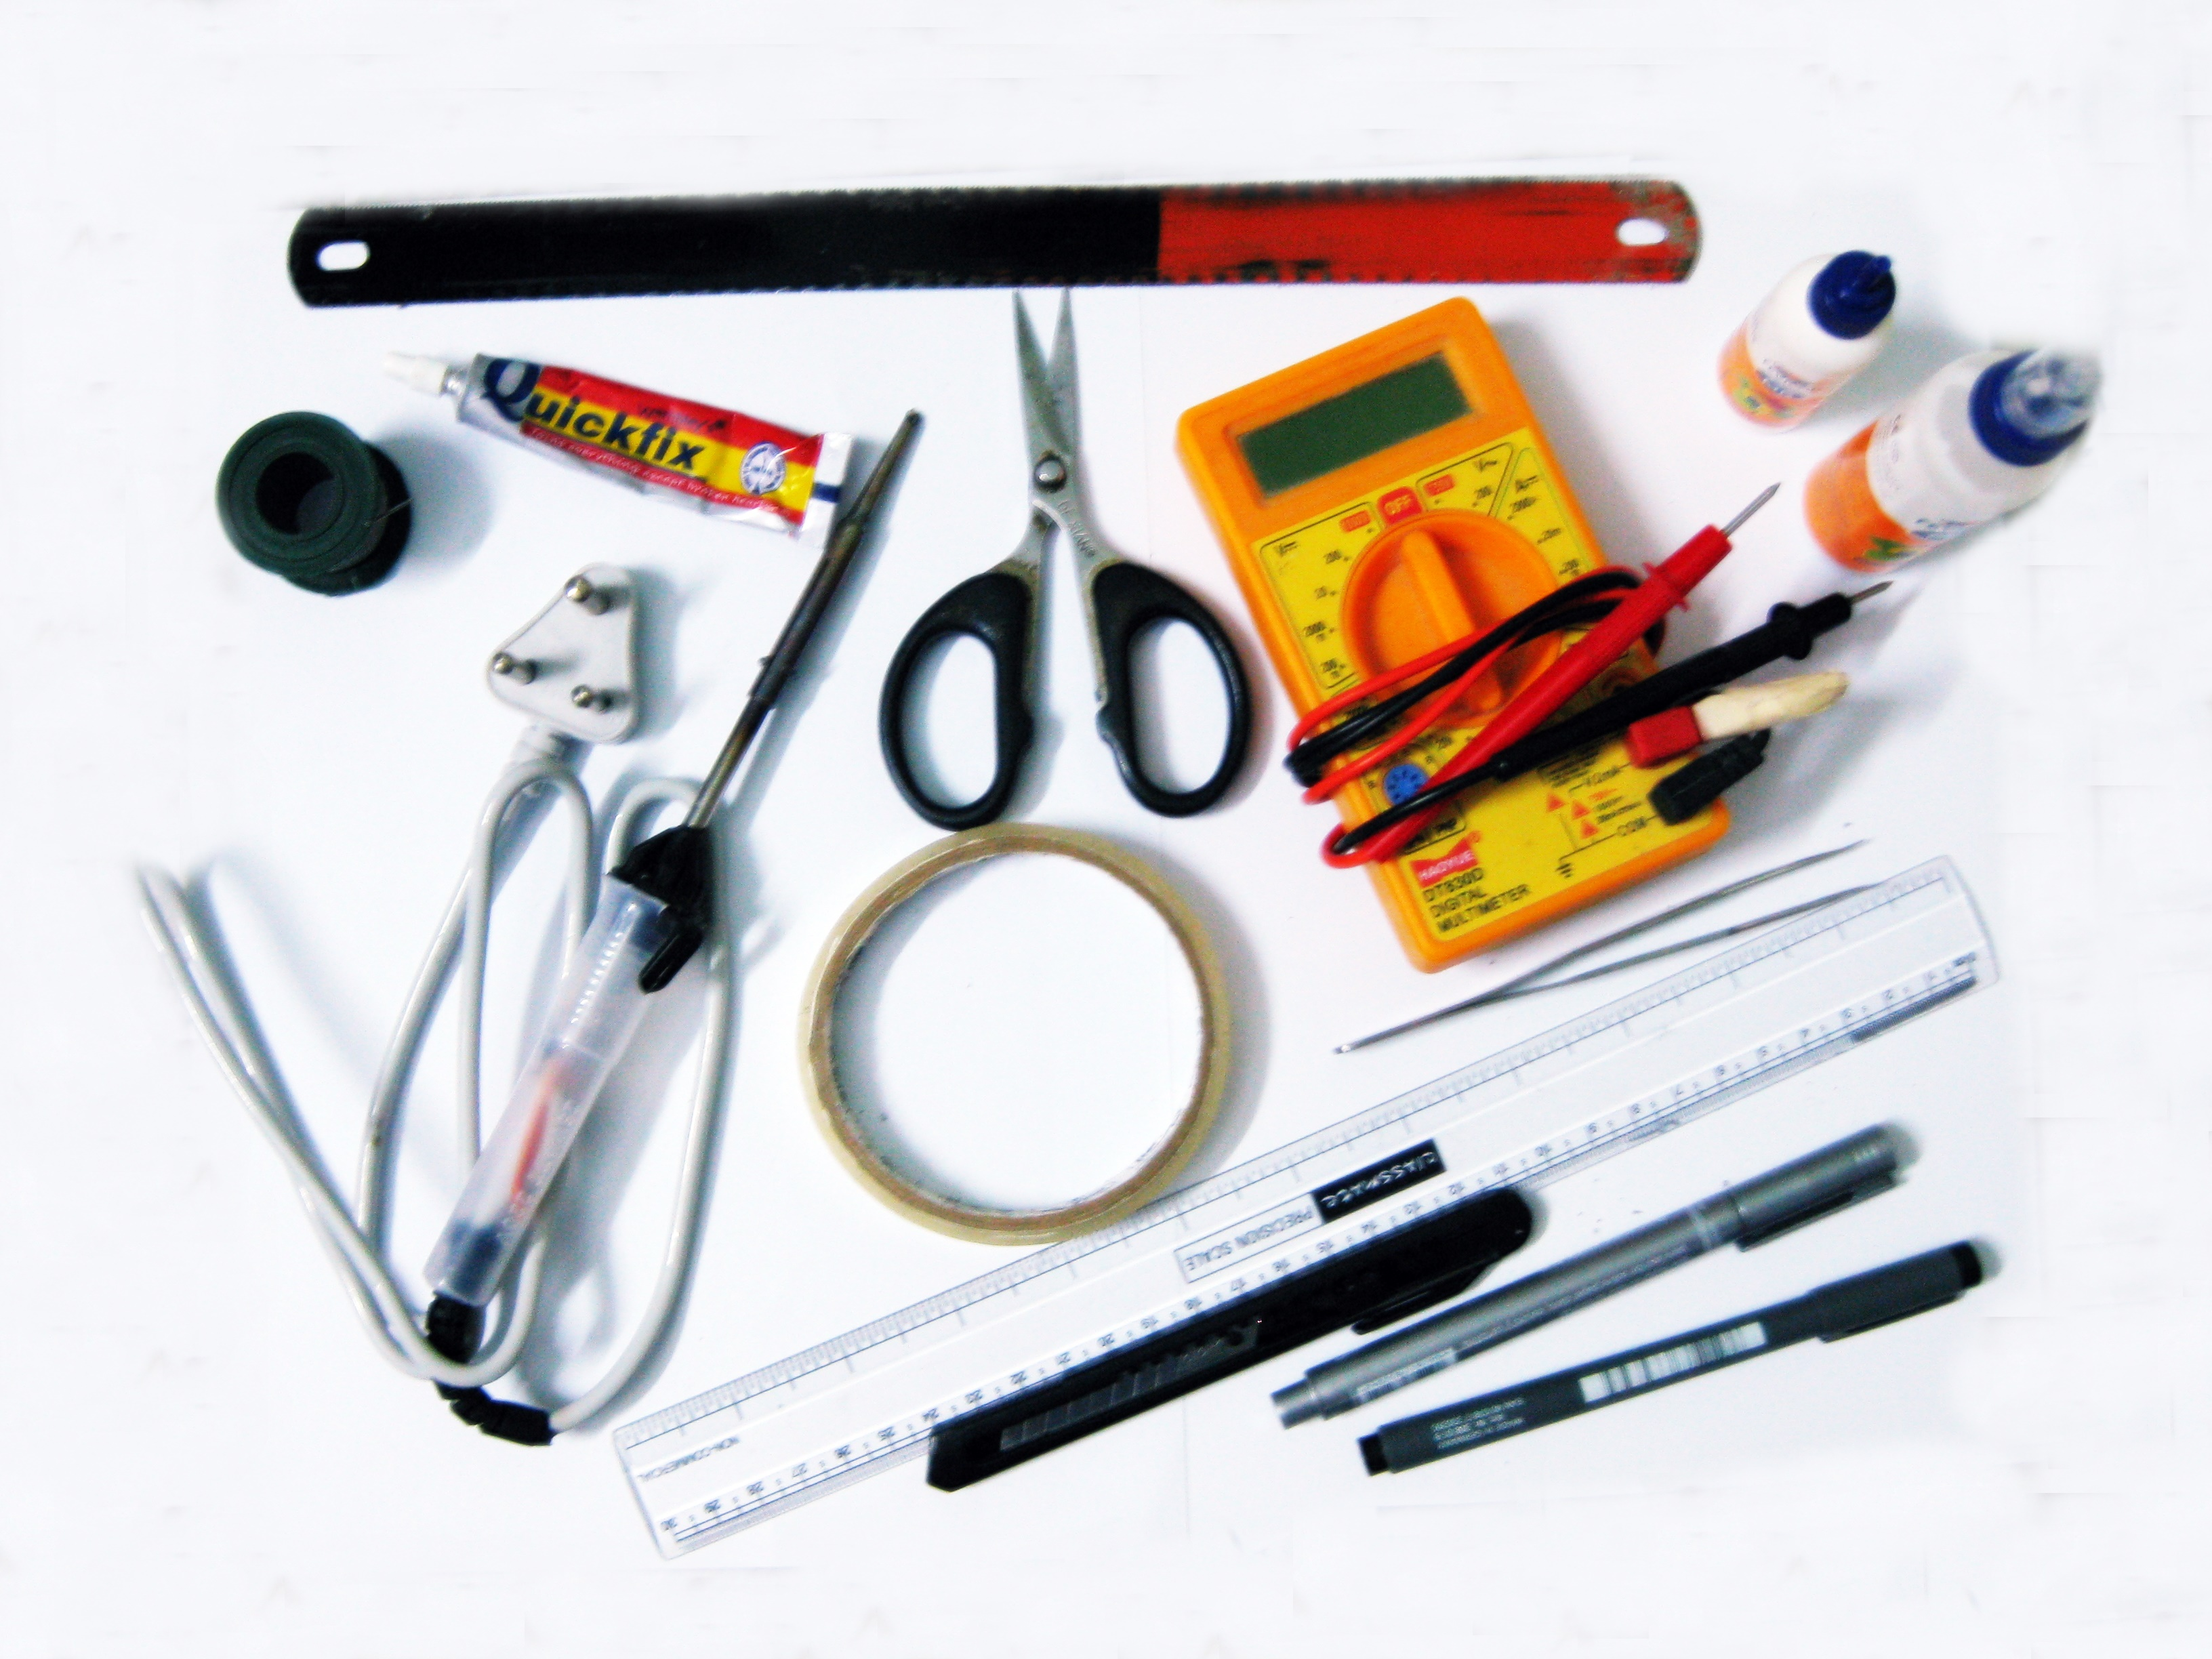 Picture of Materials & Tools Required